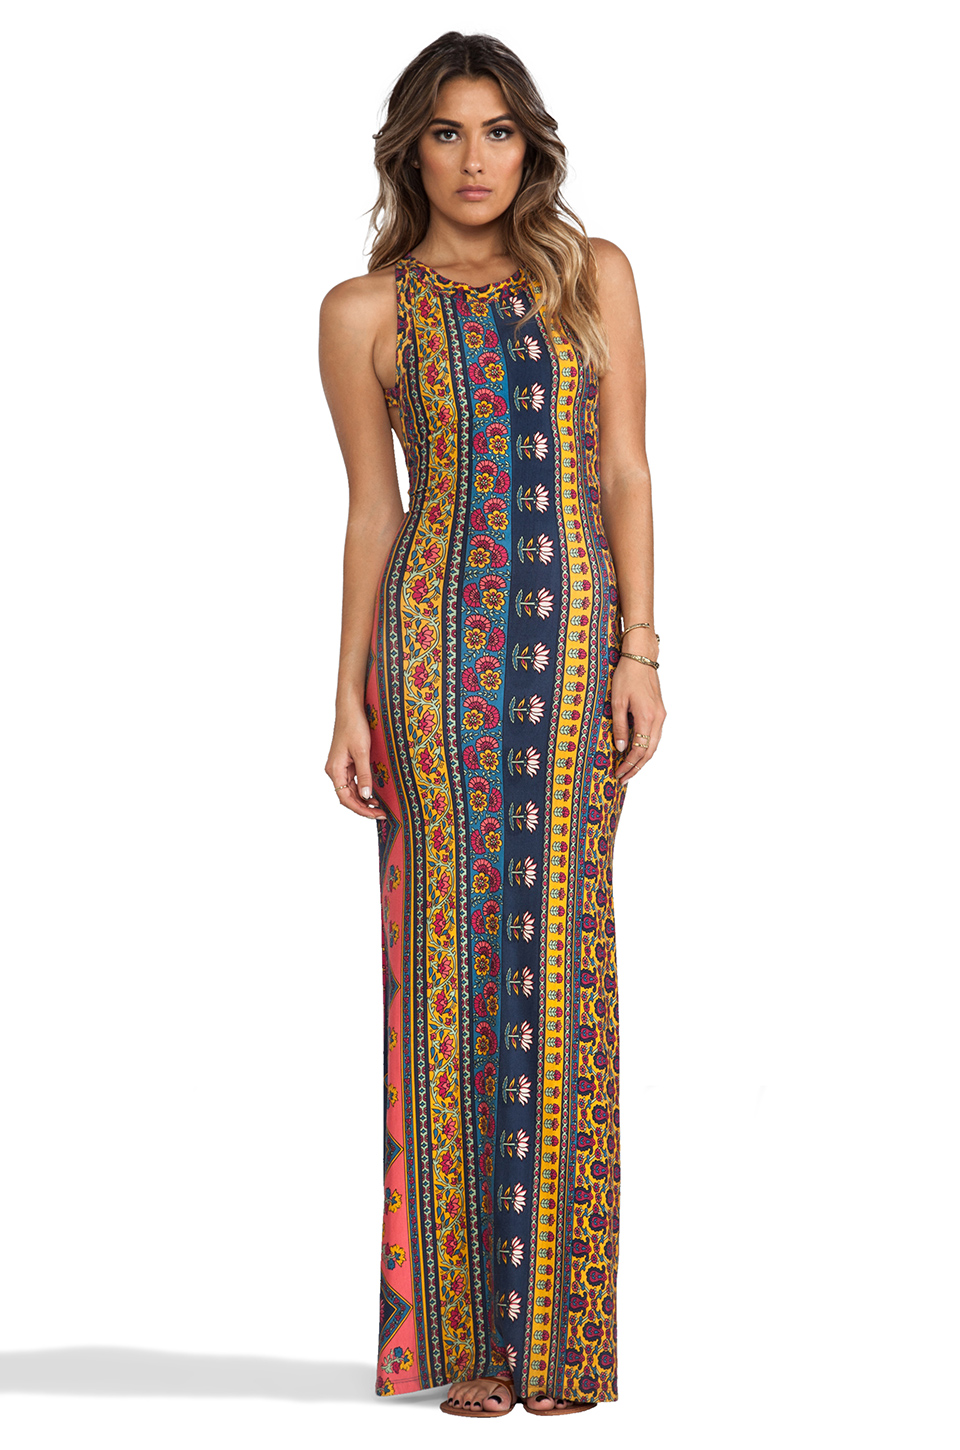 ROYALE Midnight Rambler Maxi Dress in Red Ethnic Floral from ...